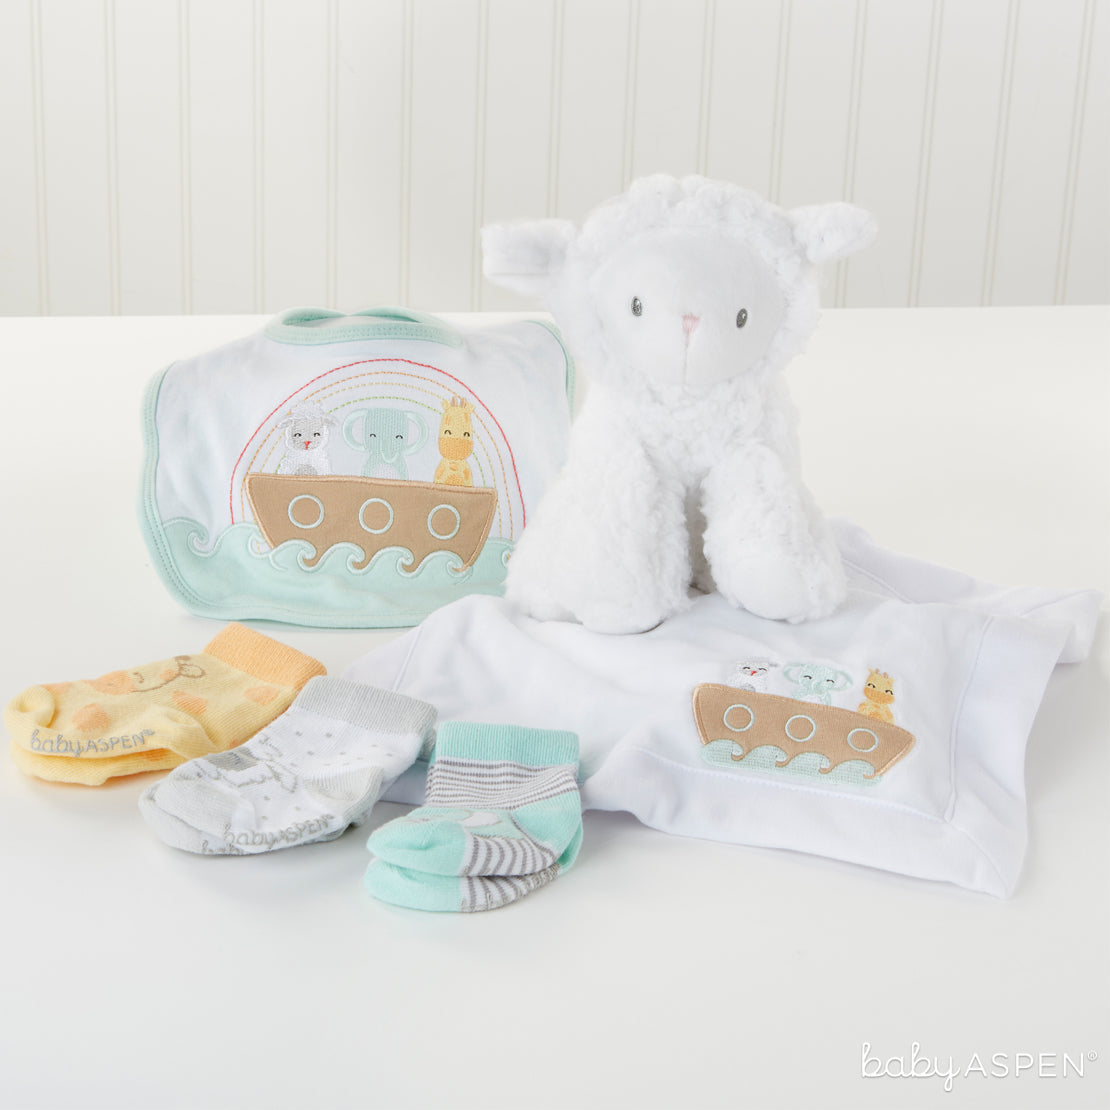 Noah's Ark Gift Set | Noah's Ark Themed Gifts For Your Biblical Baby | Baby Aspen